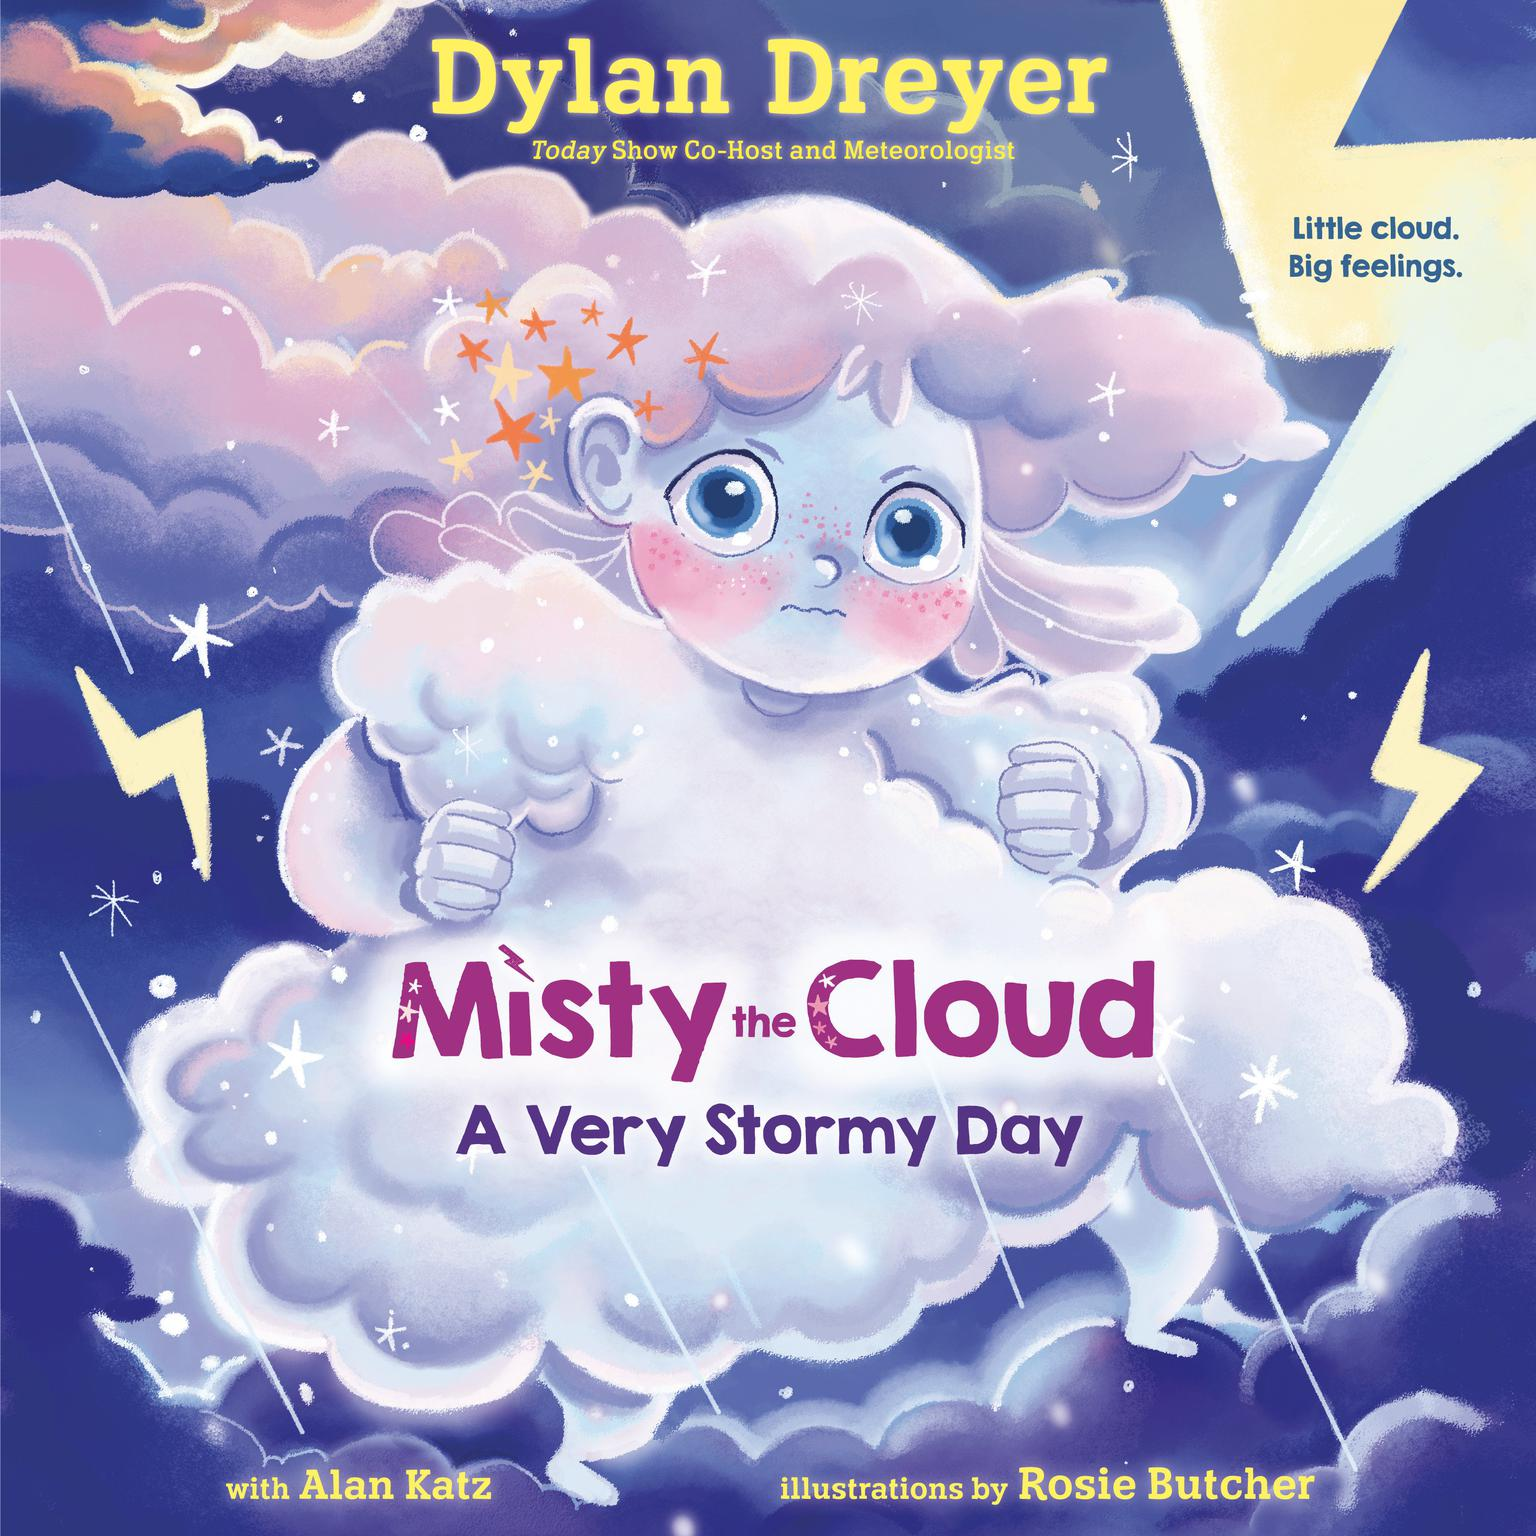 Misty the Cloud: A Very Stormy Day Audiobook, by Dylan Dreyer